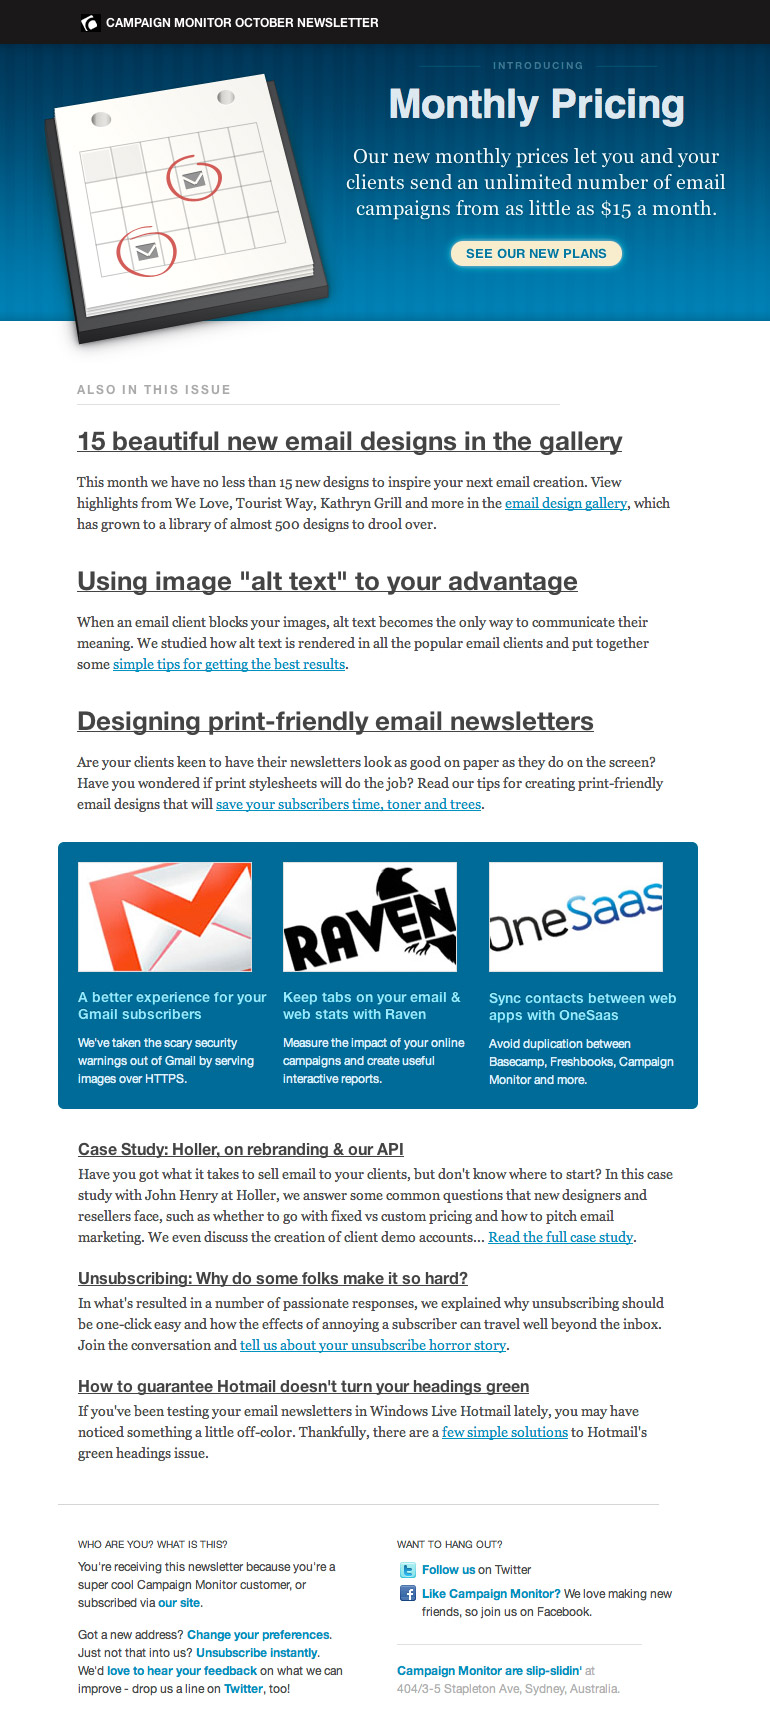 Campaign Monitor Newsletter 2010